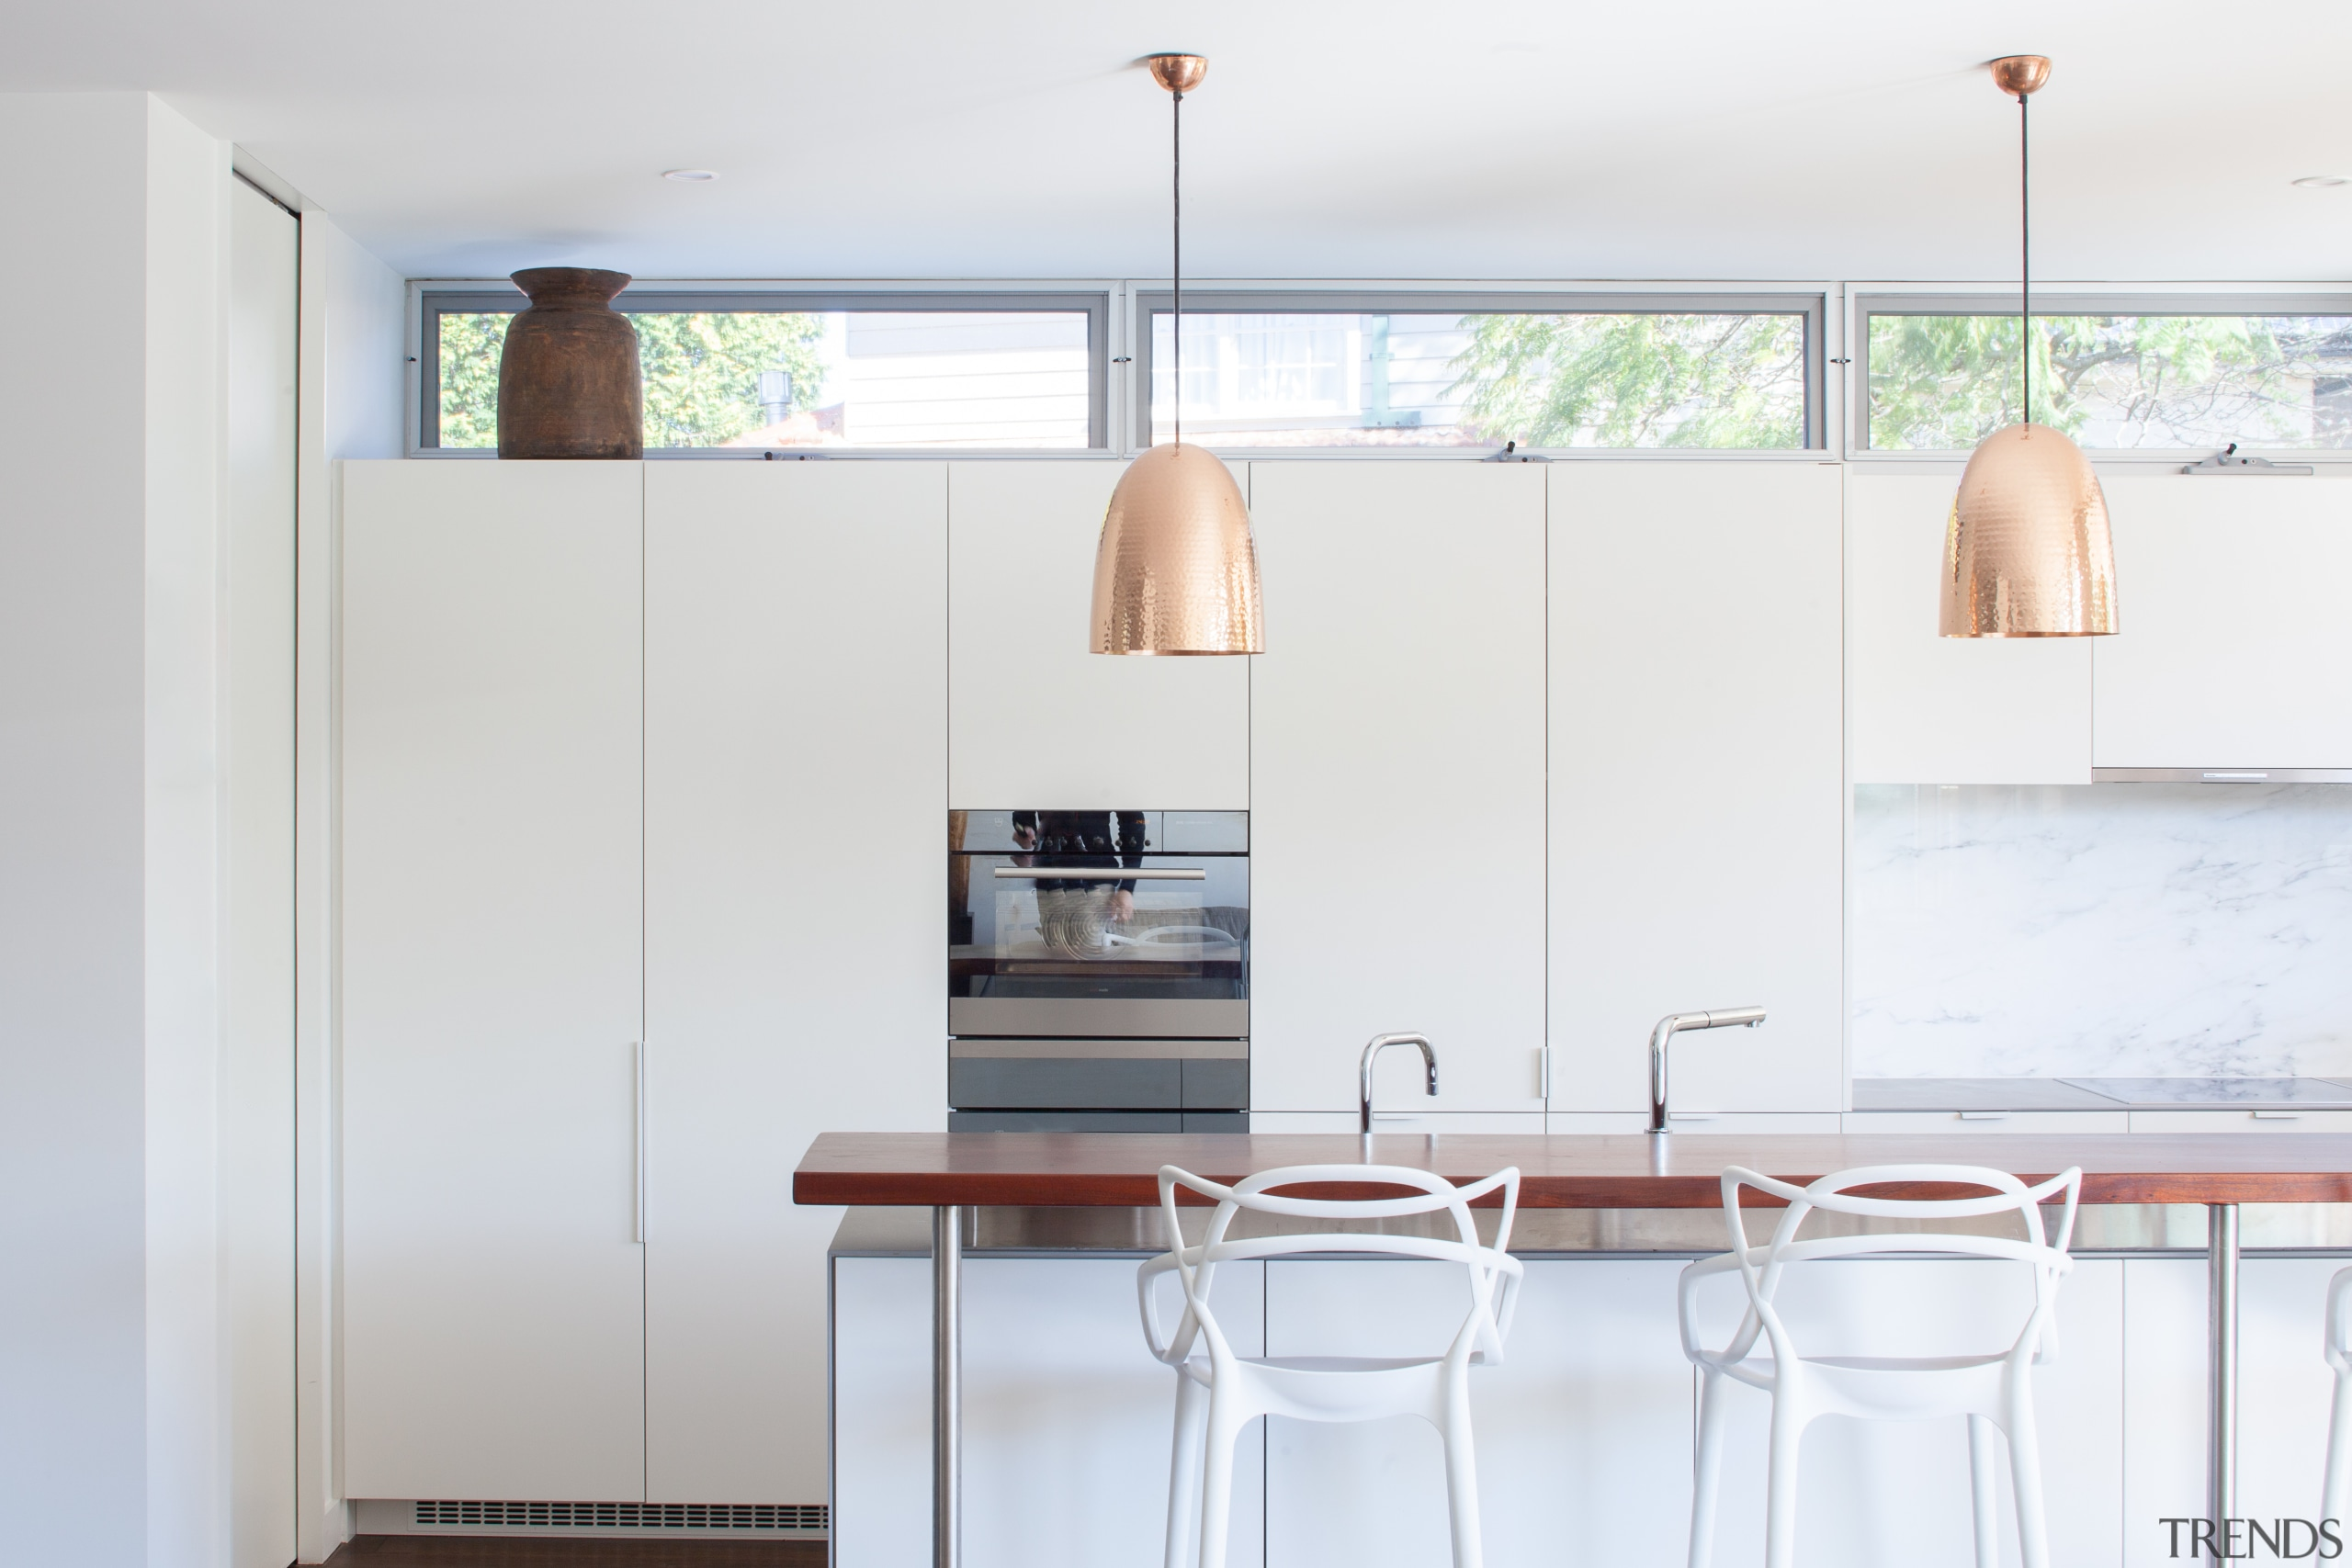 5 common kitchen blunders and how to avoid